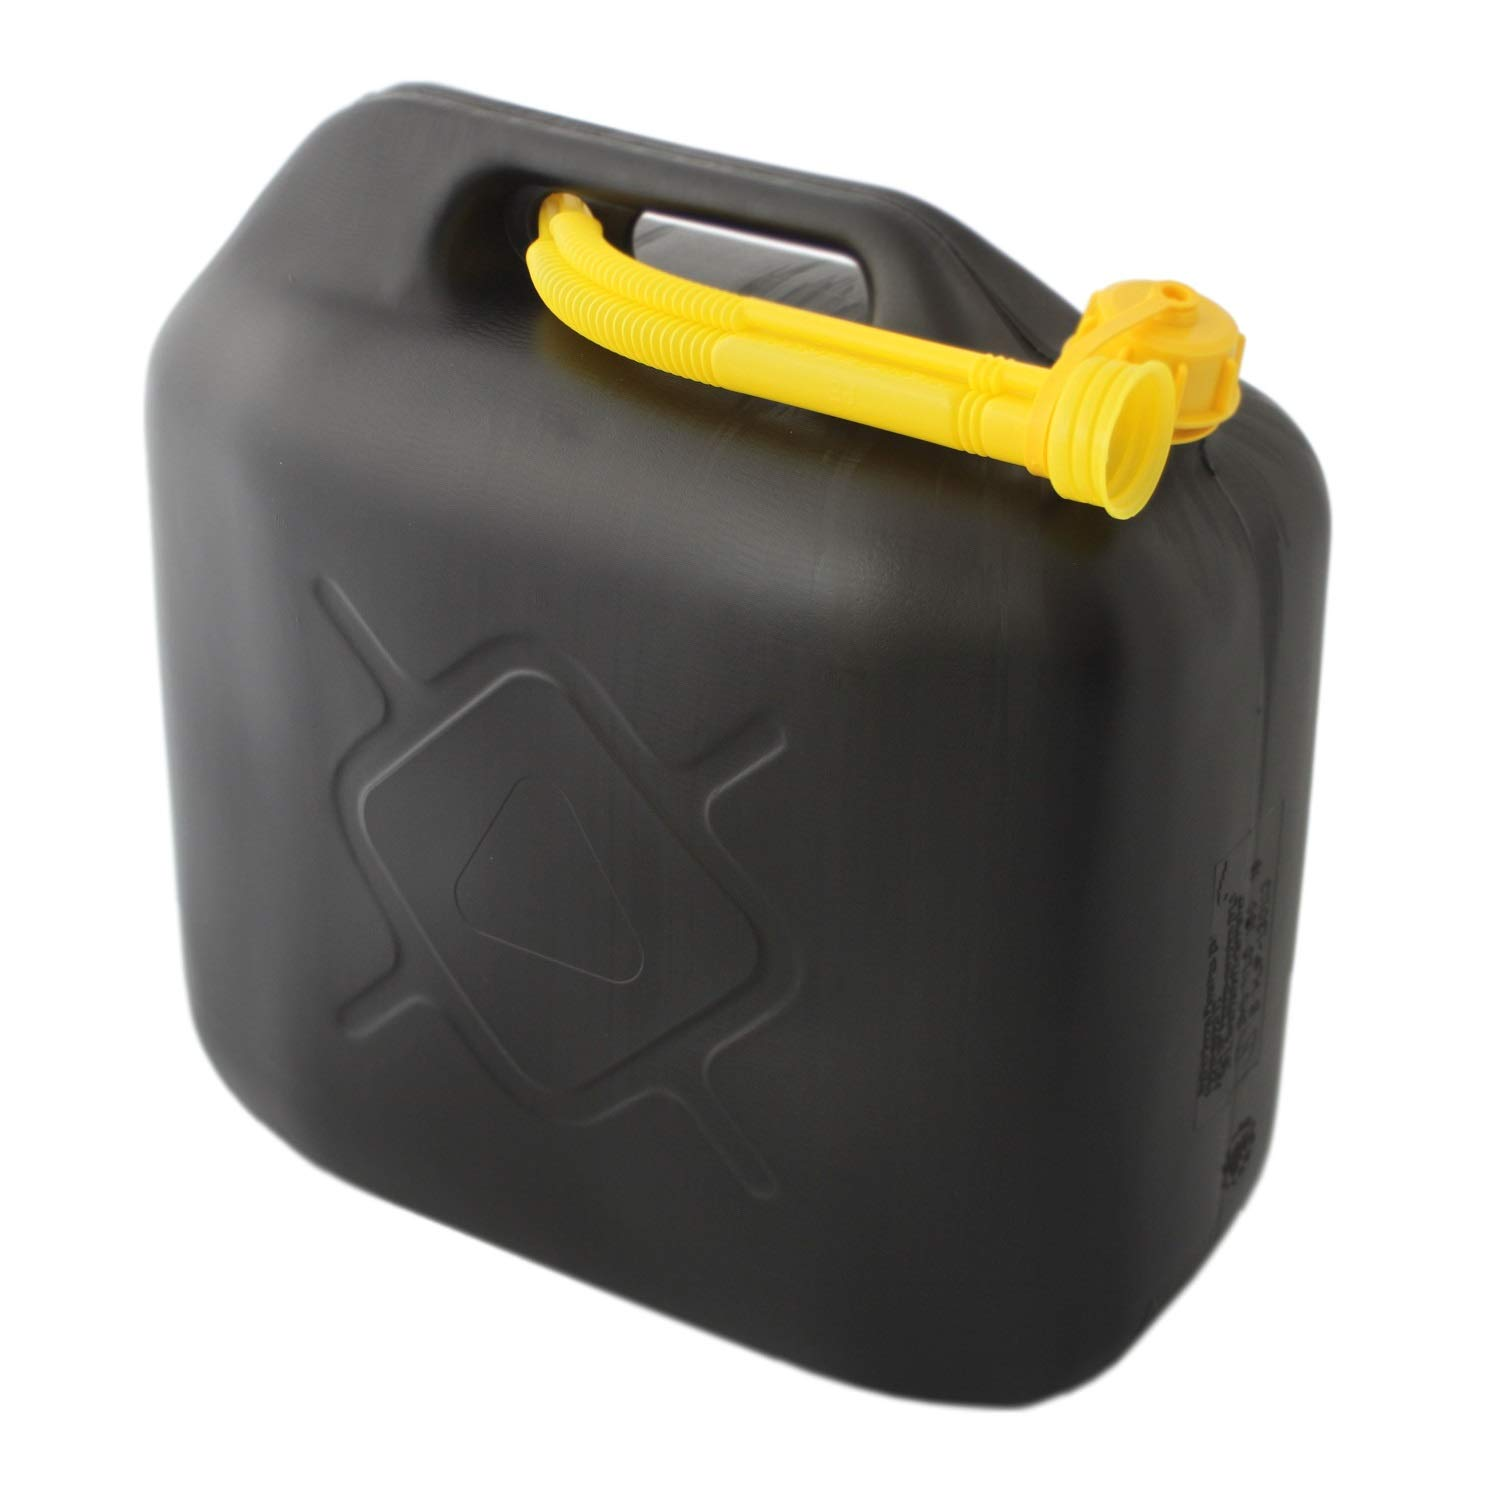 BENSON 10 Litre Plastic Petrol Can Fuel Can Replacement Canister with Spout Pipe